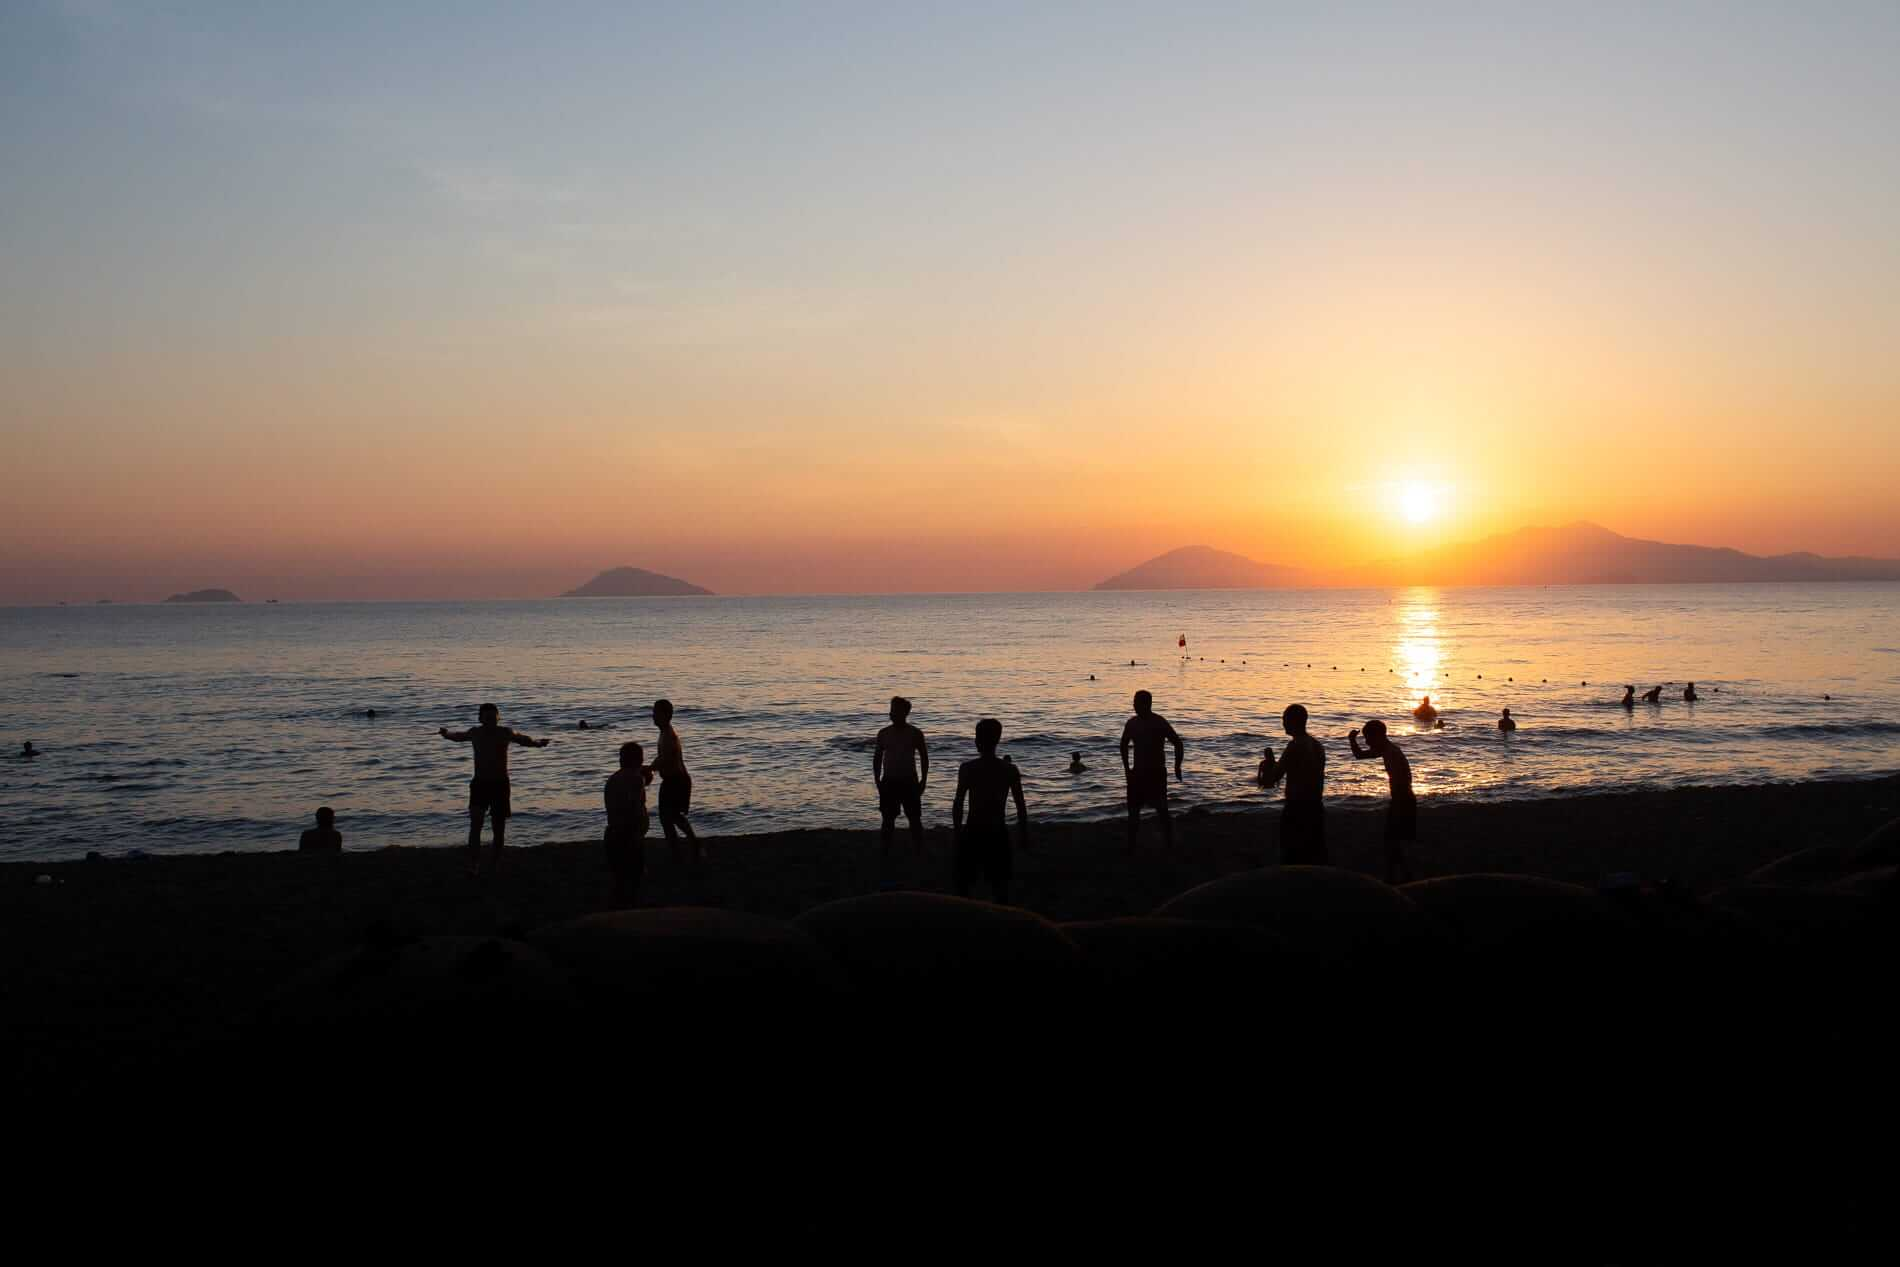 Cua Dai Beach with tourists at sunrise